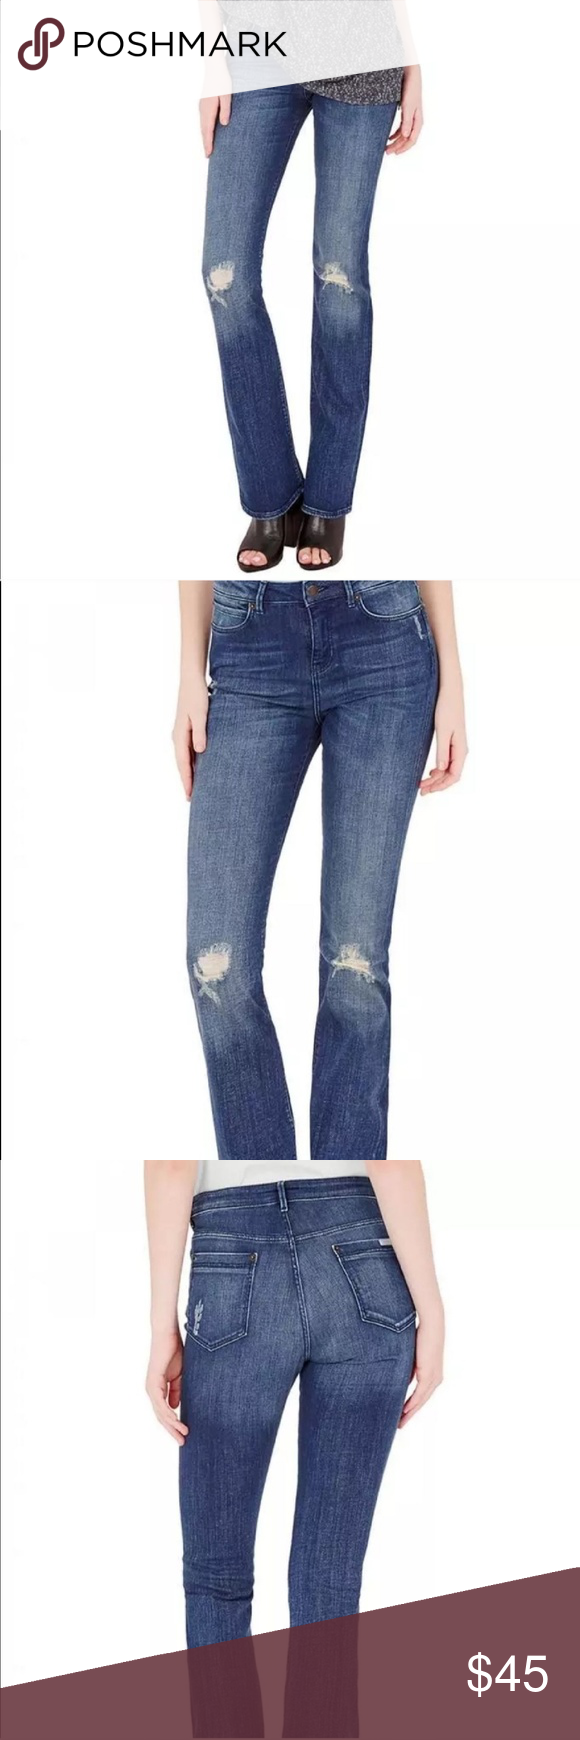 Sass Bide Mojo Kiko Distressed Jeans Mojo Kiko Is The 2015 Line From Sass Bide Known For Its Asian Design Influence Clothes Design Distressed Jeans Fashion